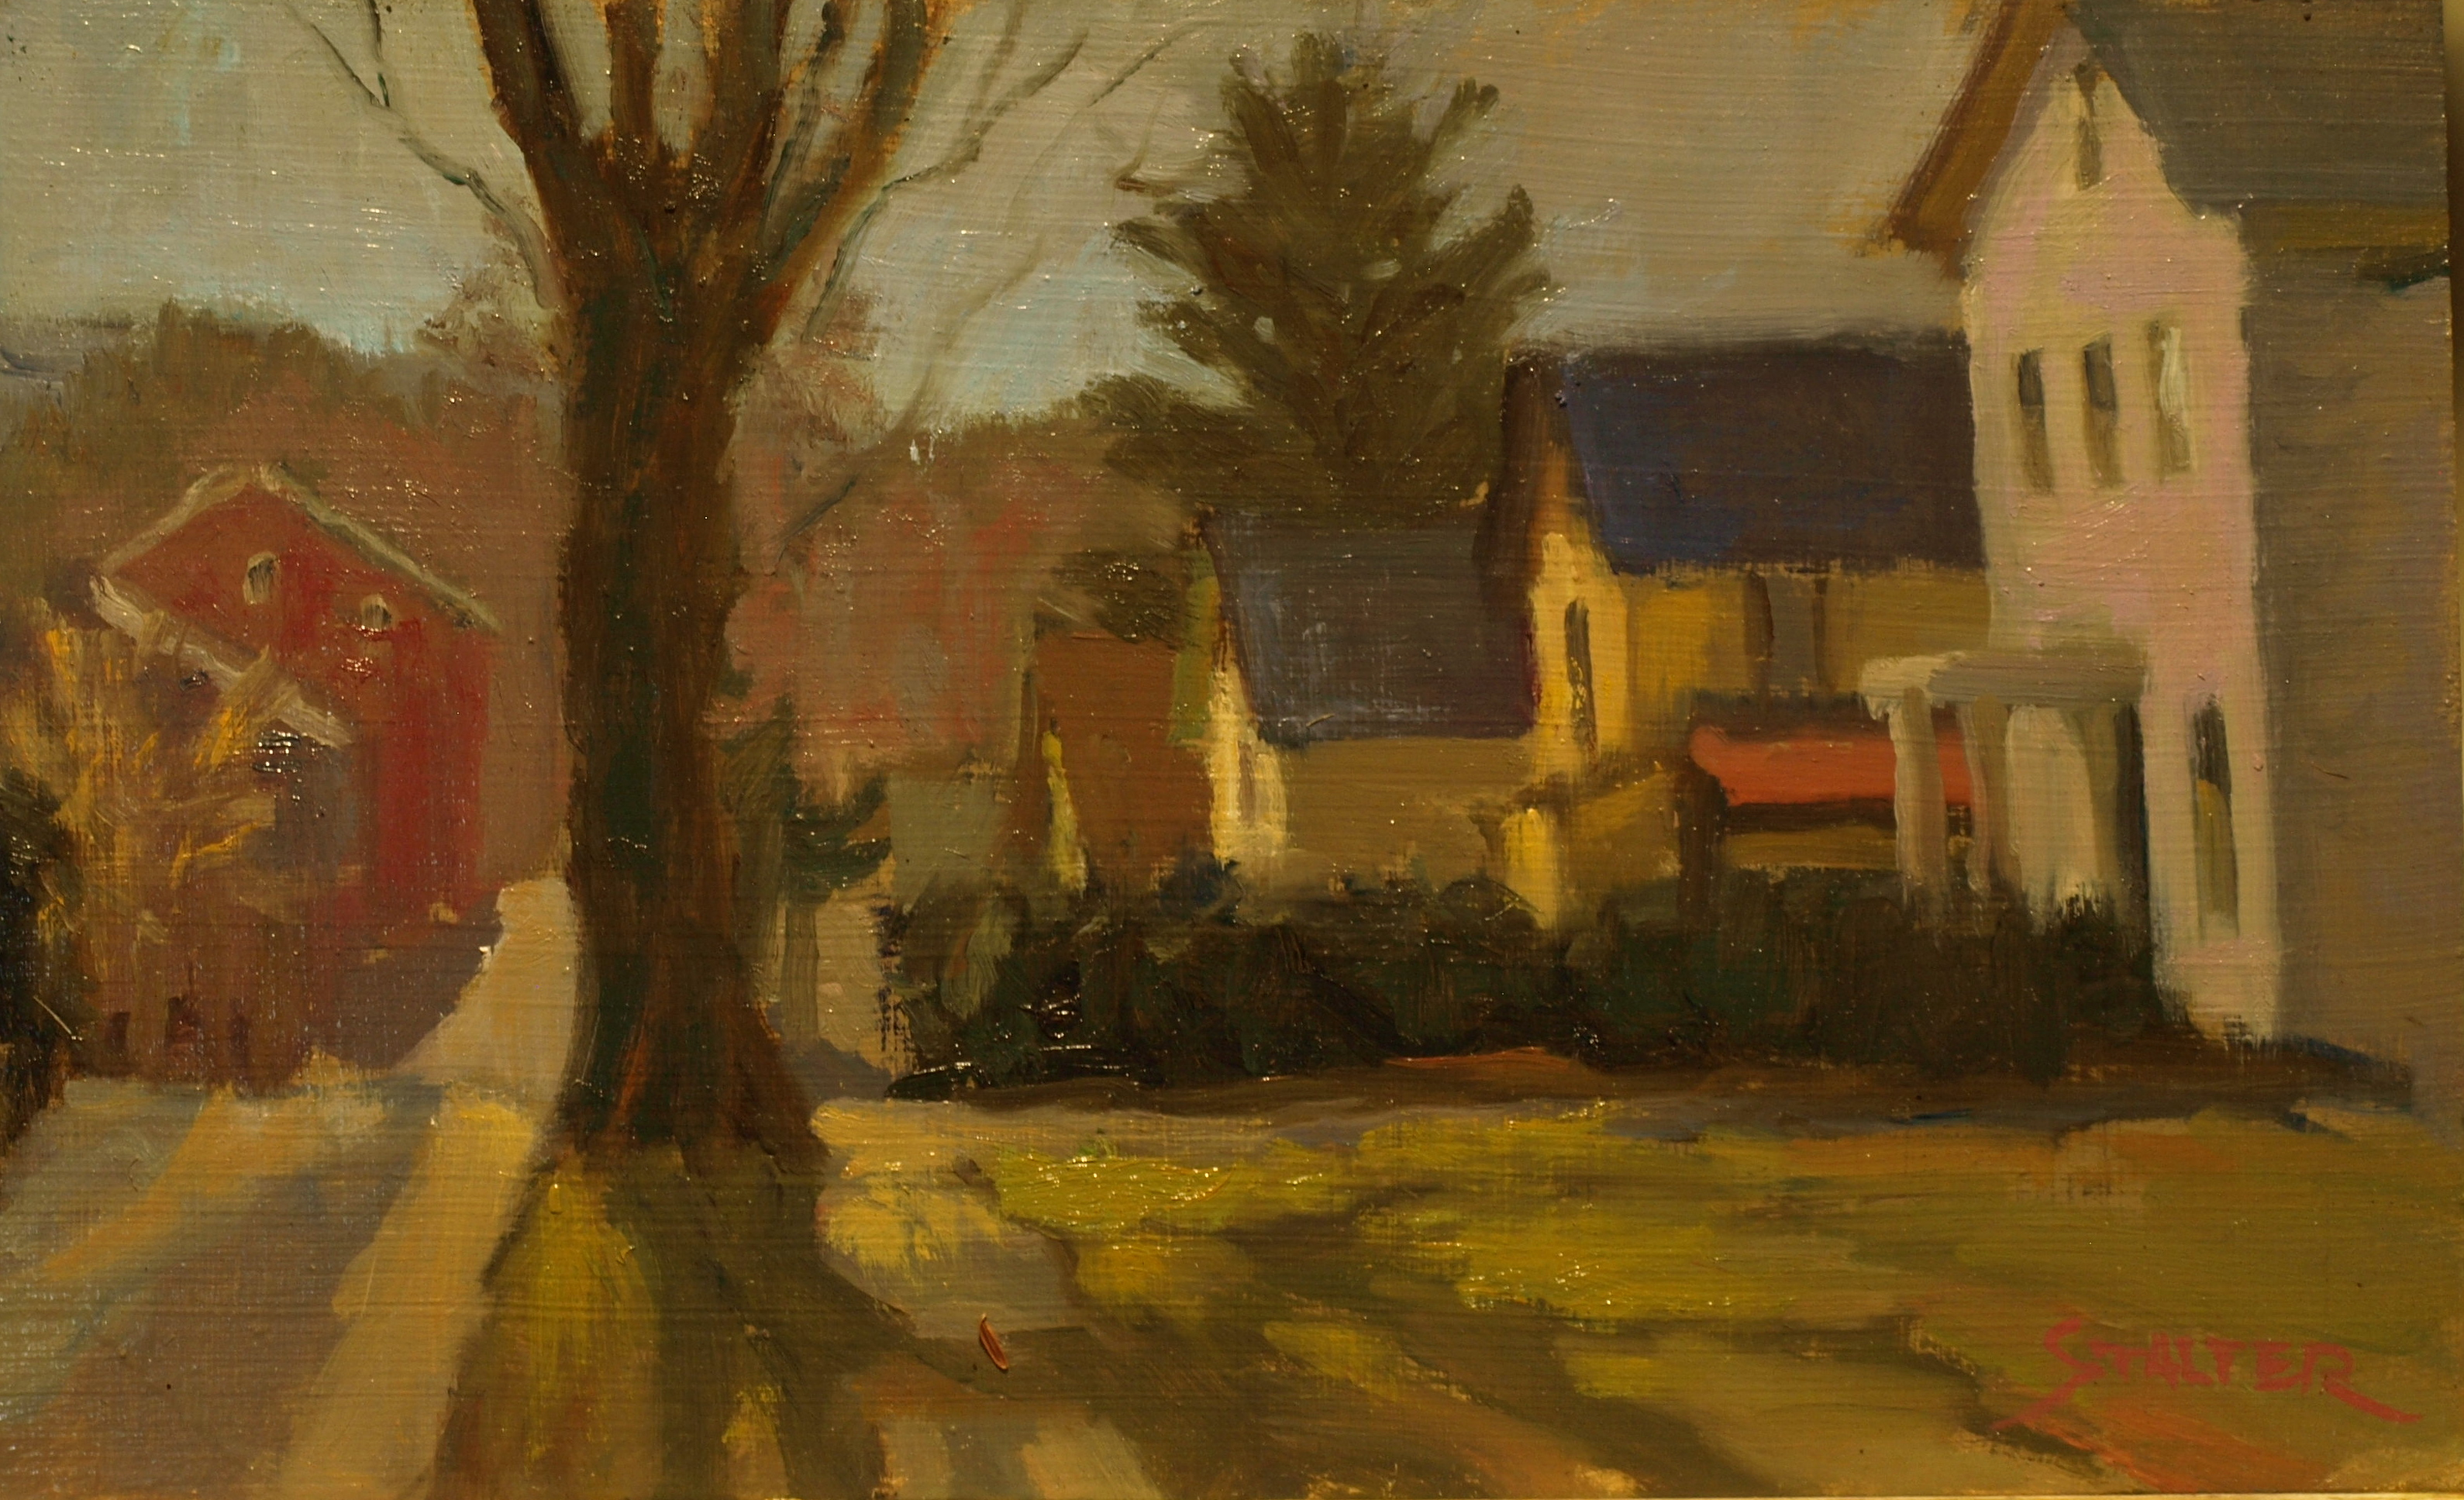 Sunshine -- West Street, Oil on Panel, 8 x 14 Inches, by Richard Stalter, $220